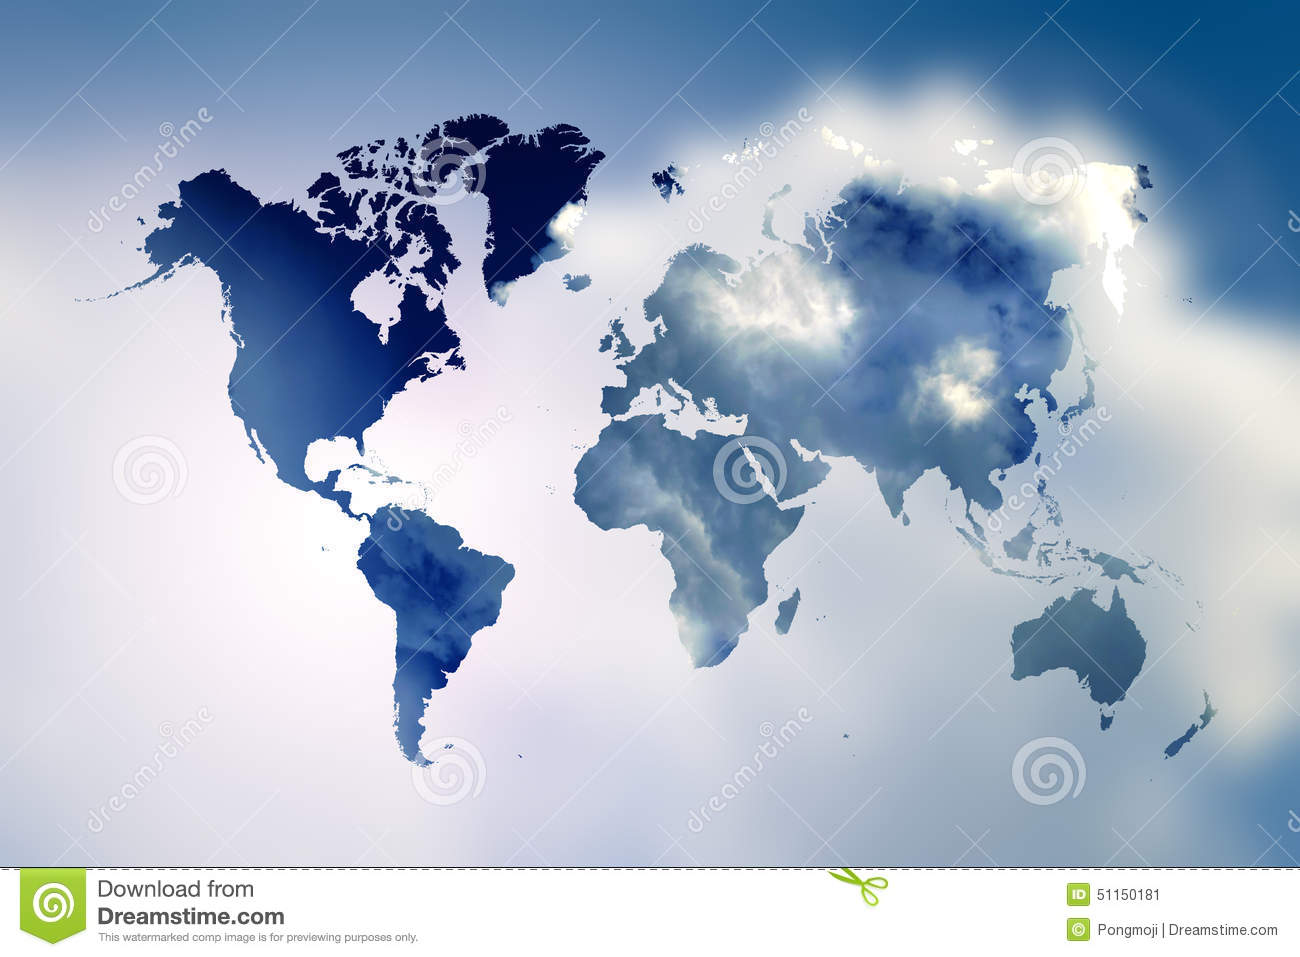 Blurred flare blue sky with world map stock illustration blurred flare blue sky with world map gumiabroncs